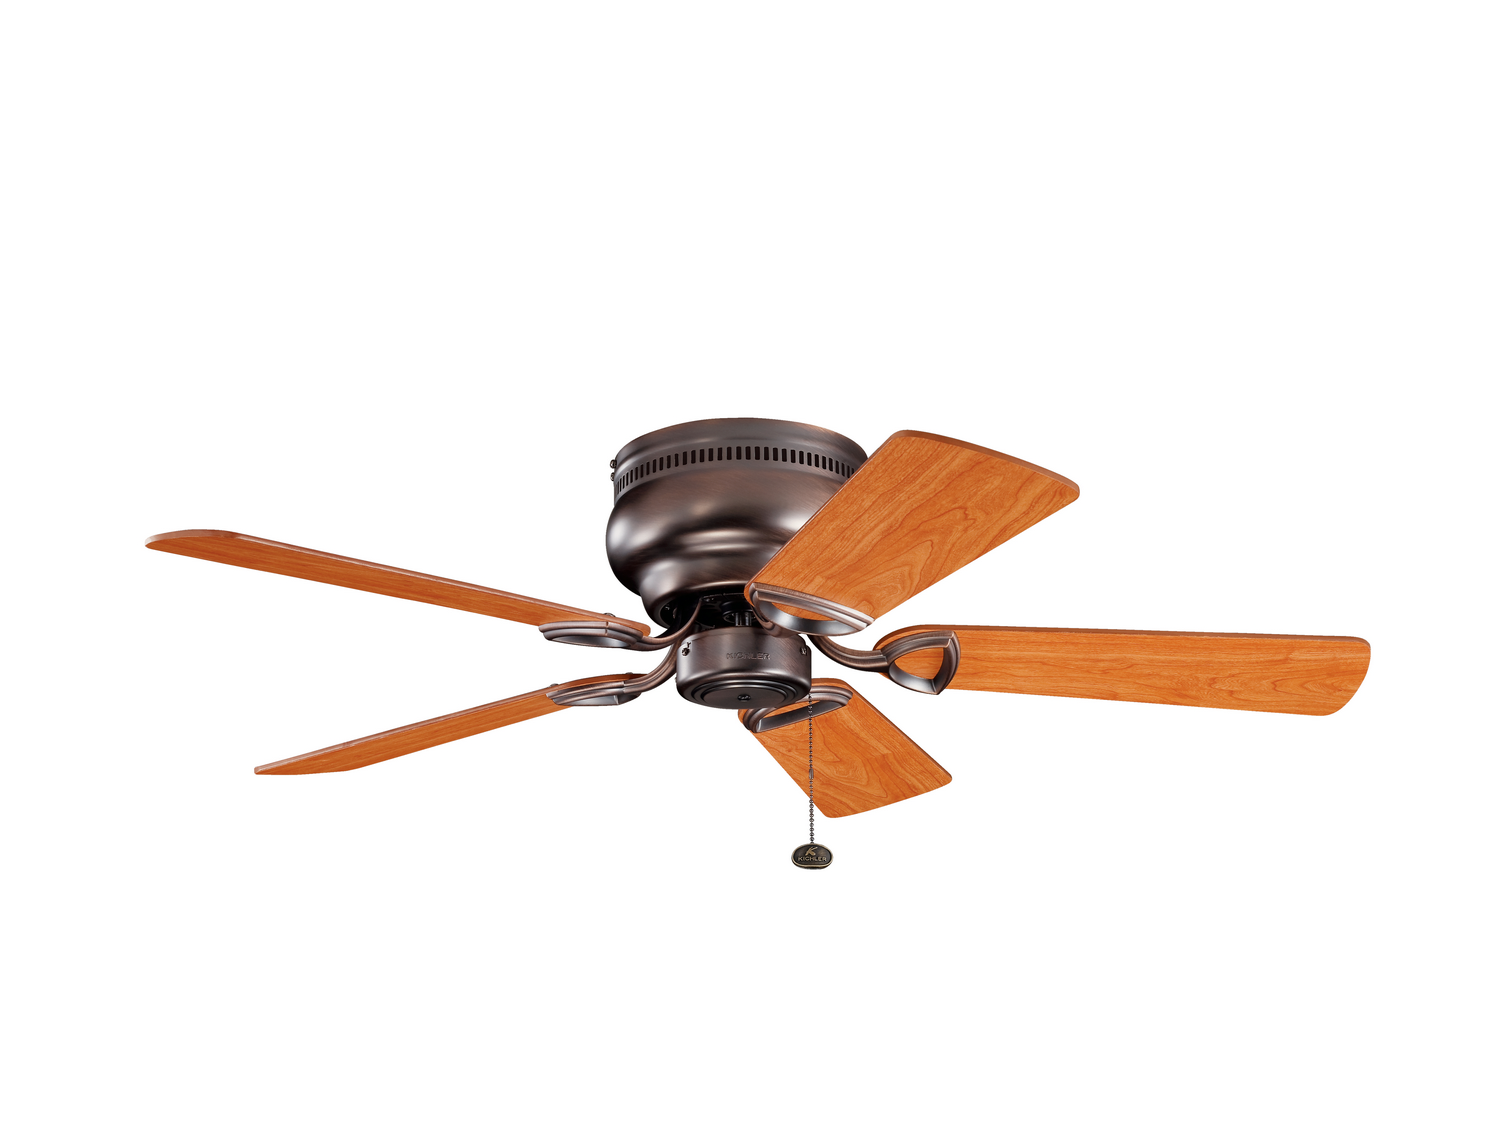 42 inchCeiling Fan from the Stratmoor collection by Kichler 339017OBB